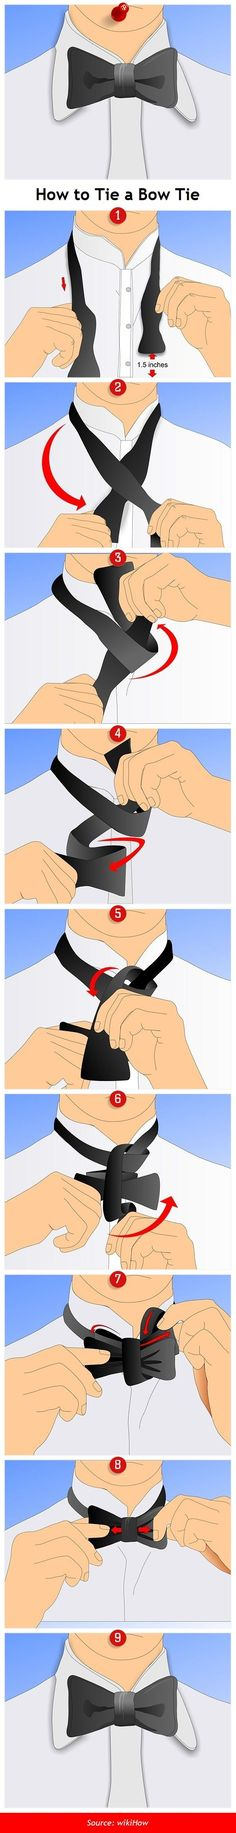 How to Tie a Bow Tie, from wikiHow.com! #style #clothing #men #fashion #dapper